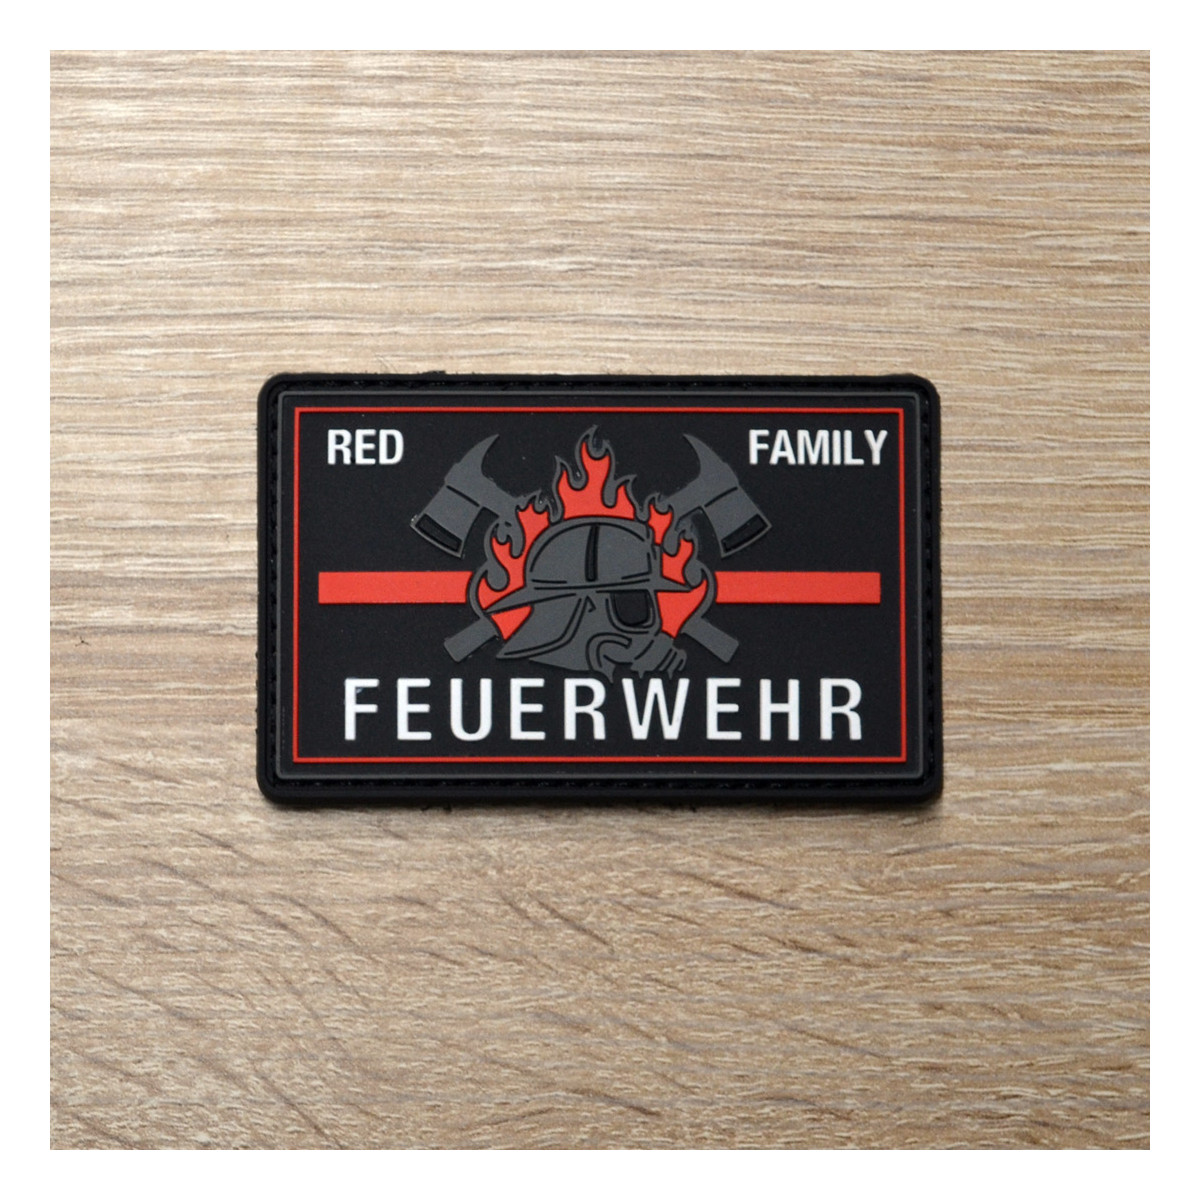 3D Patch | Feuerwehr red line family